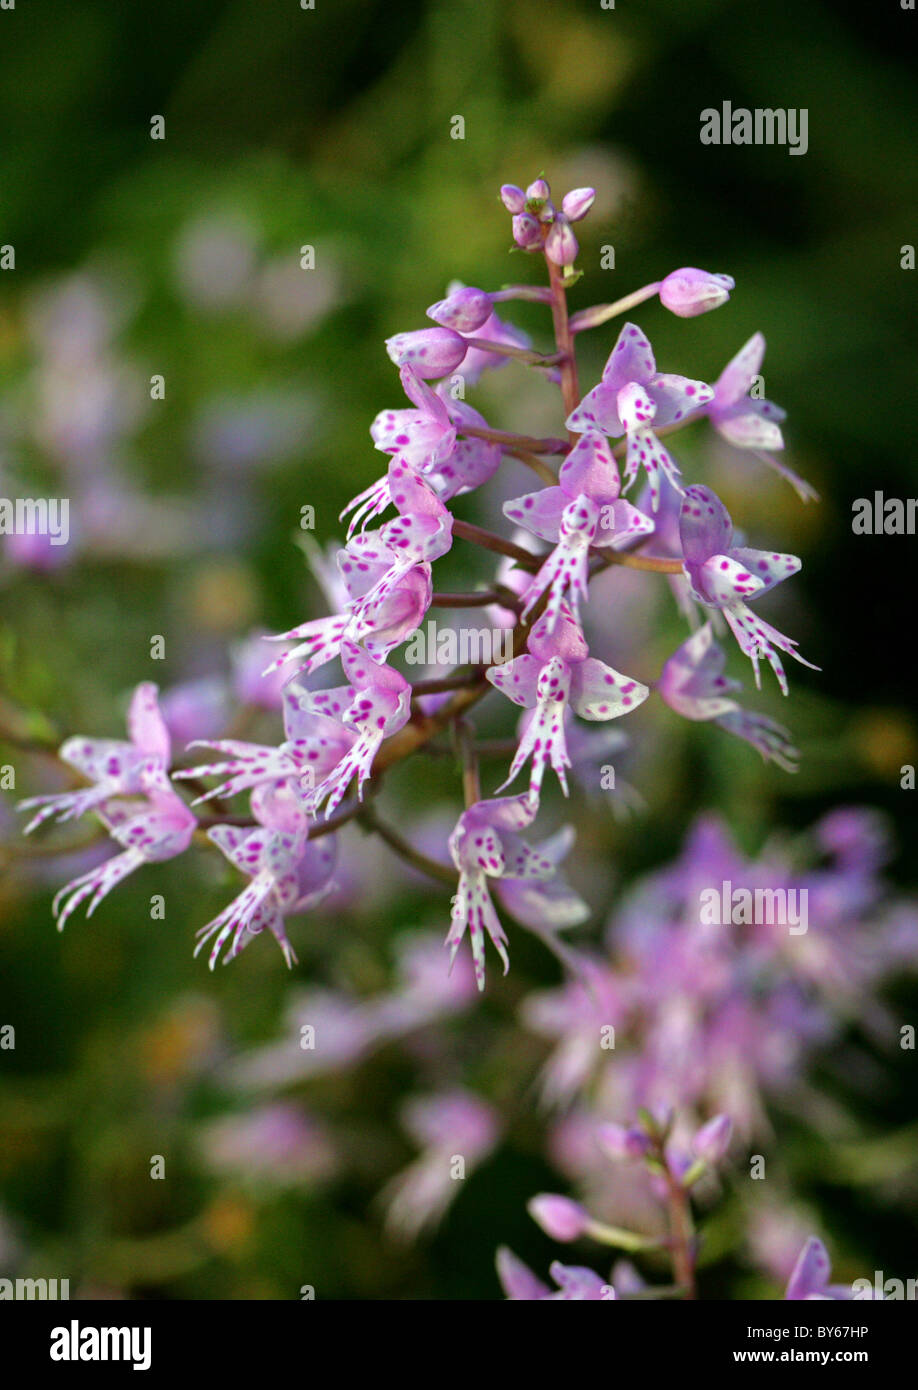 A Pink Spotted Orchid, Orchidaceae. - Stock Image